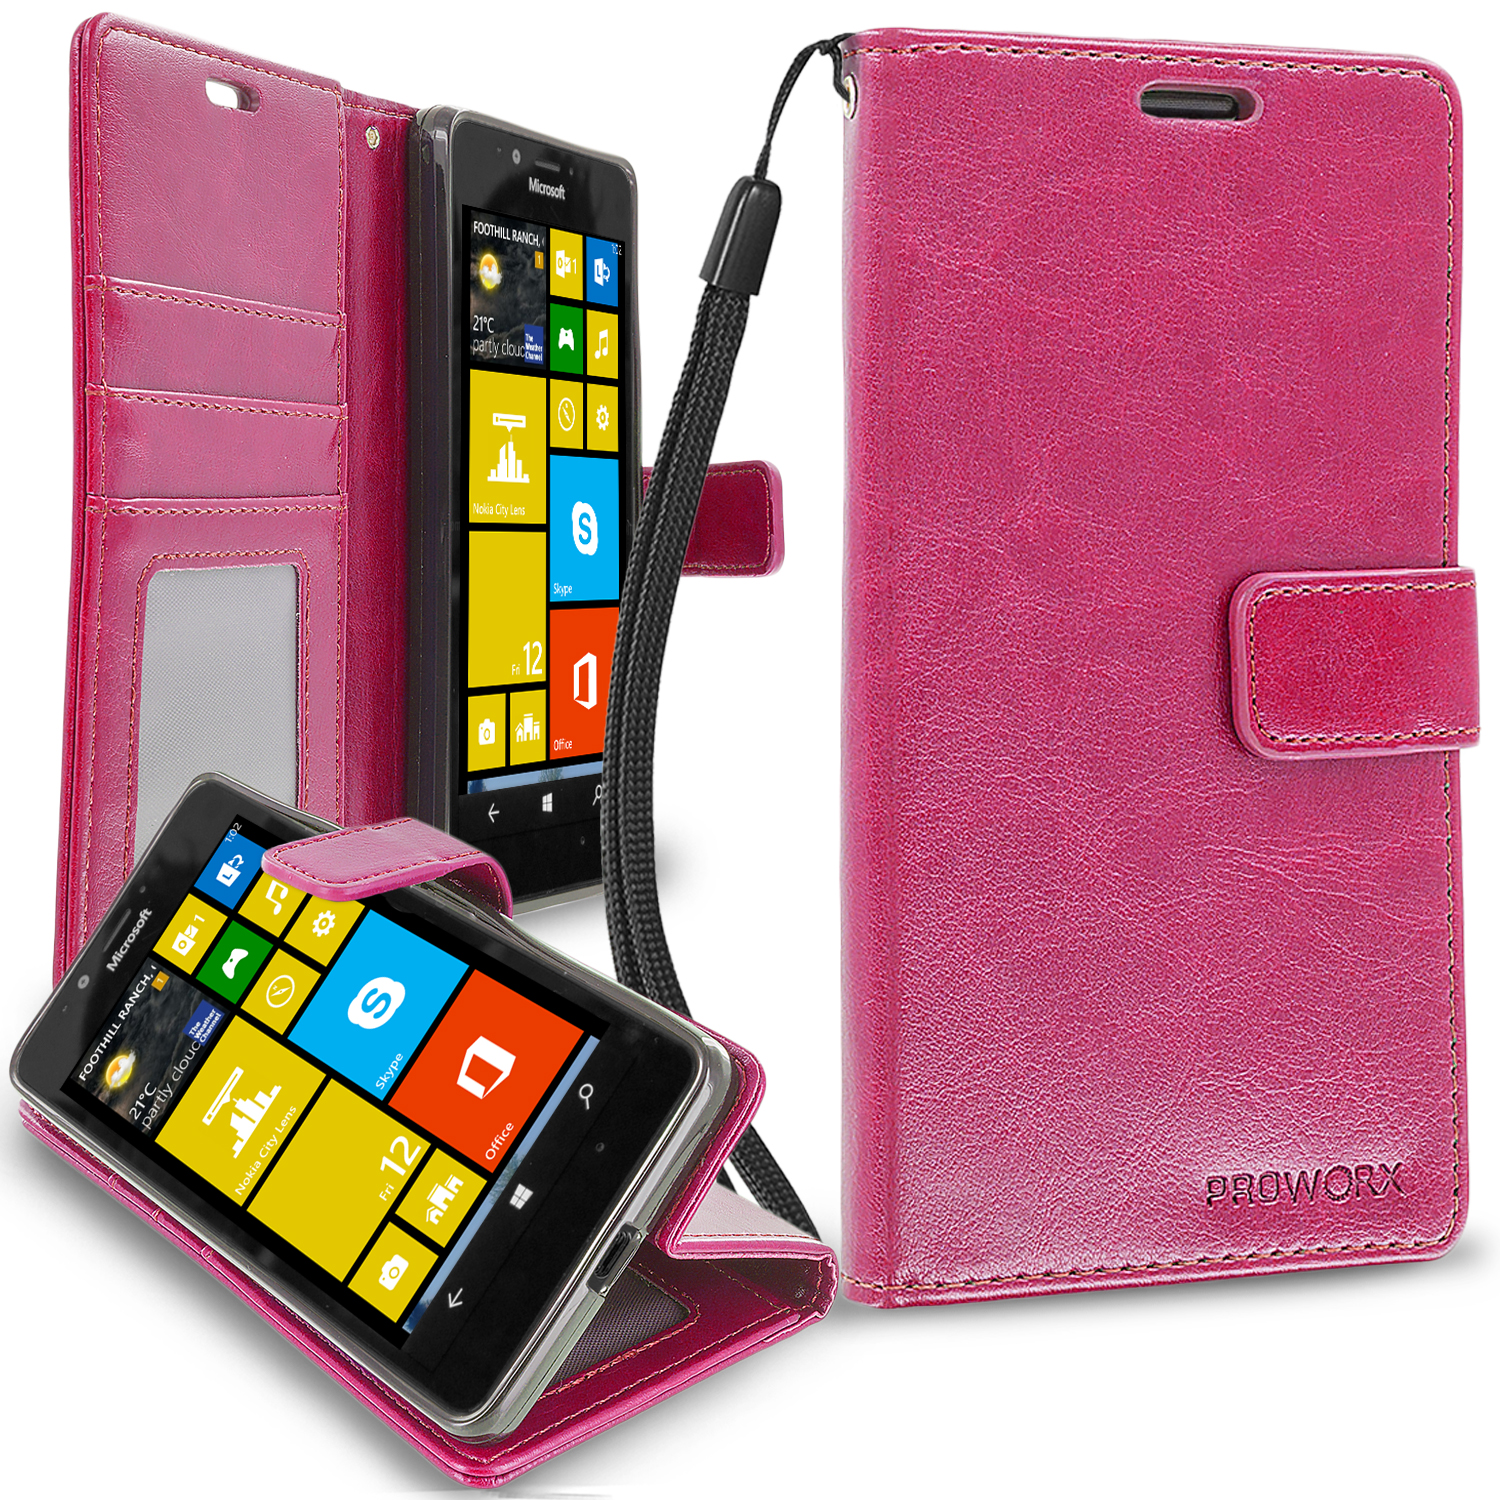 Microsoft Lumia 950 Hot Pink ProWorx Wallet Case Luxury PU Leather Case Cover With Card Slots & Stand